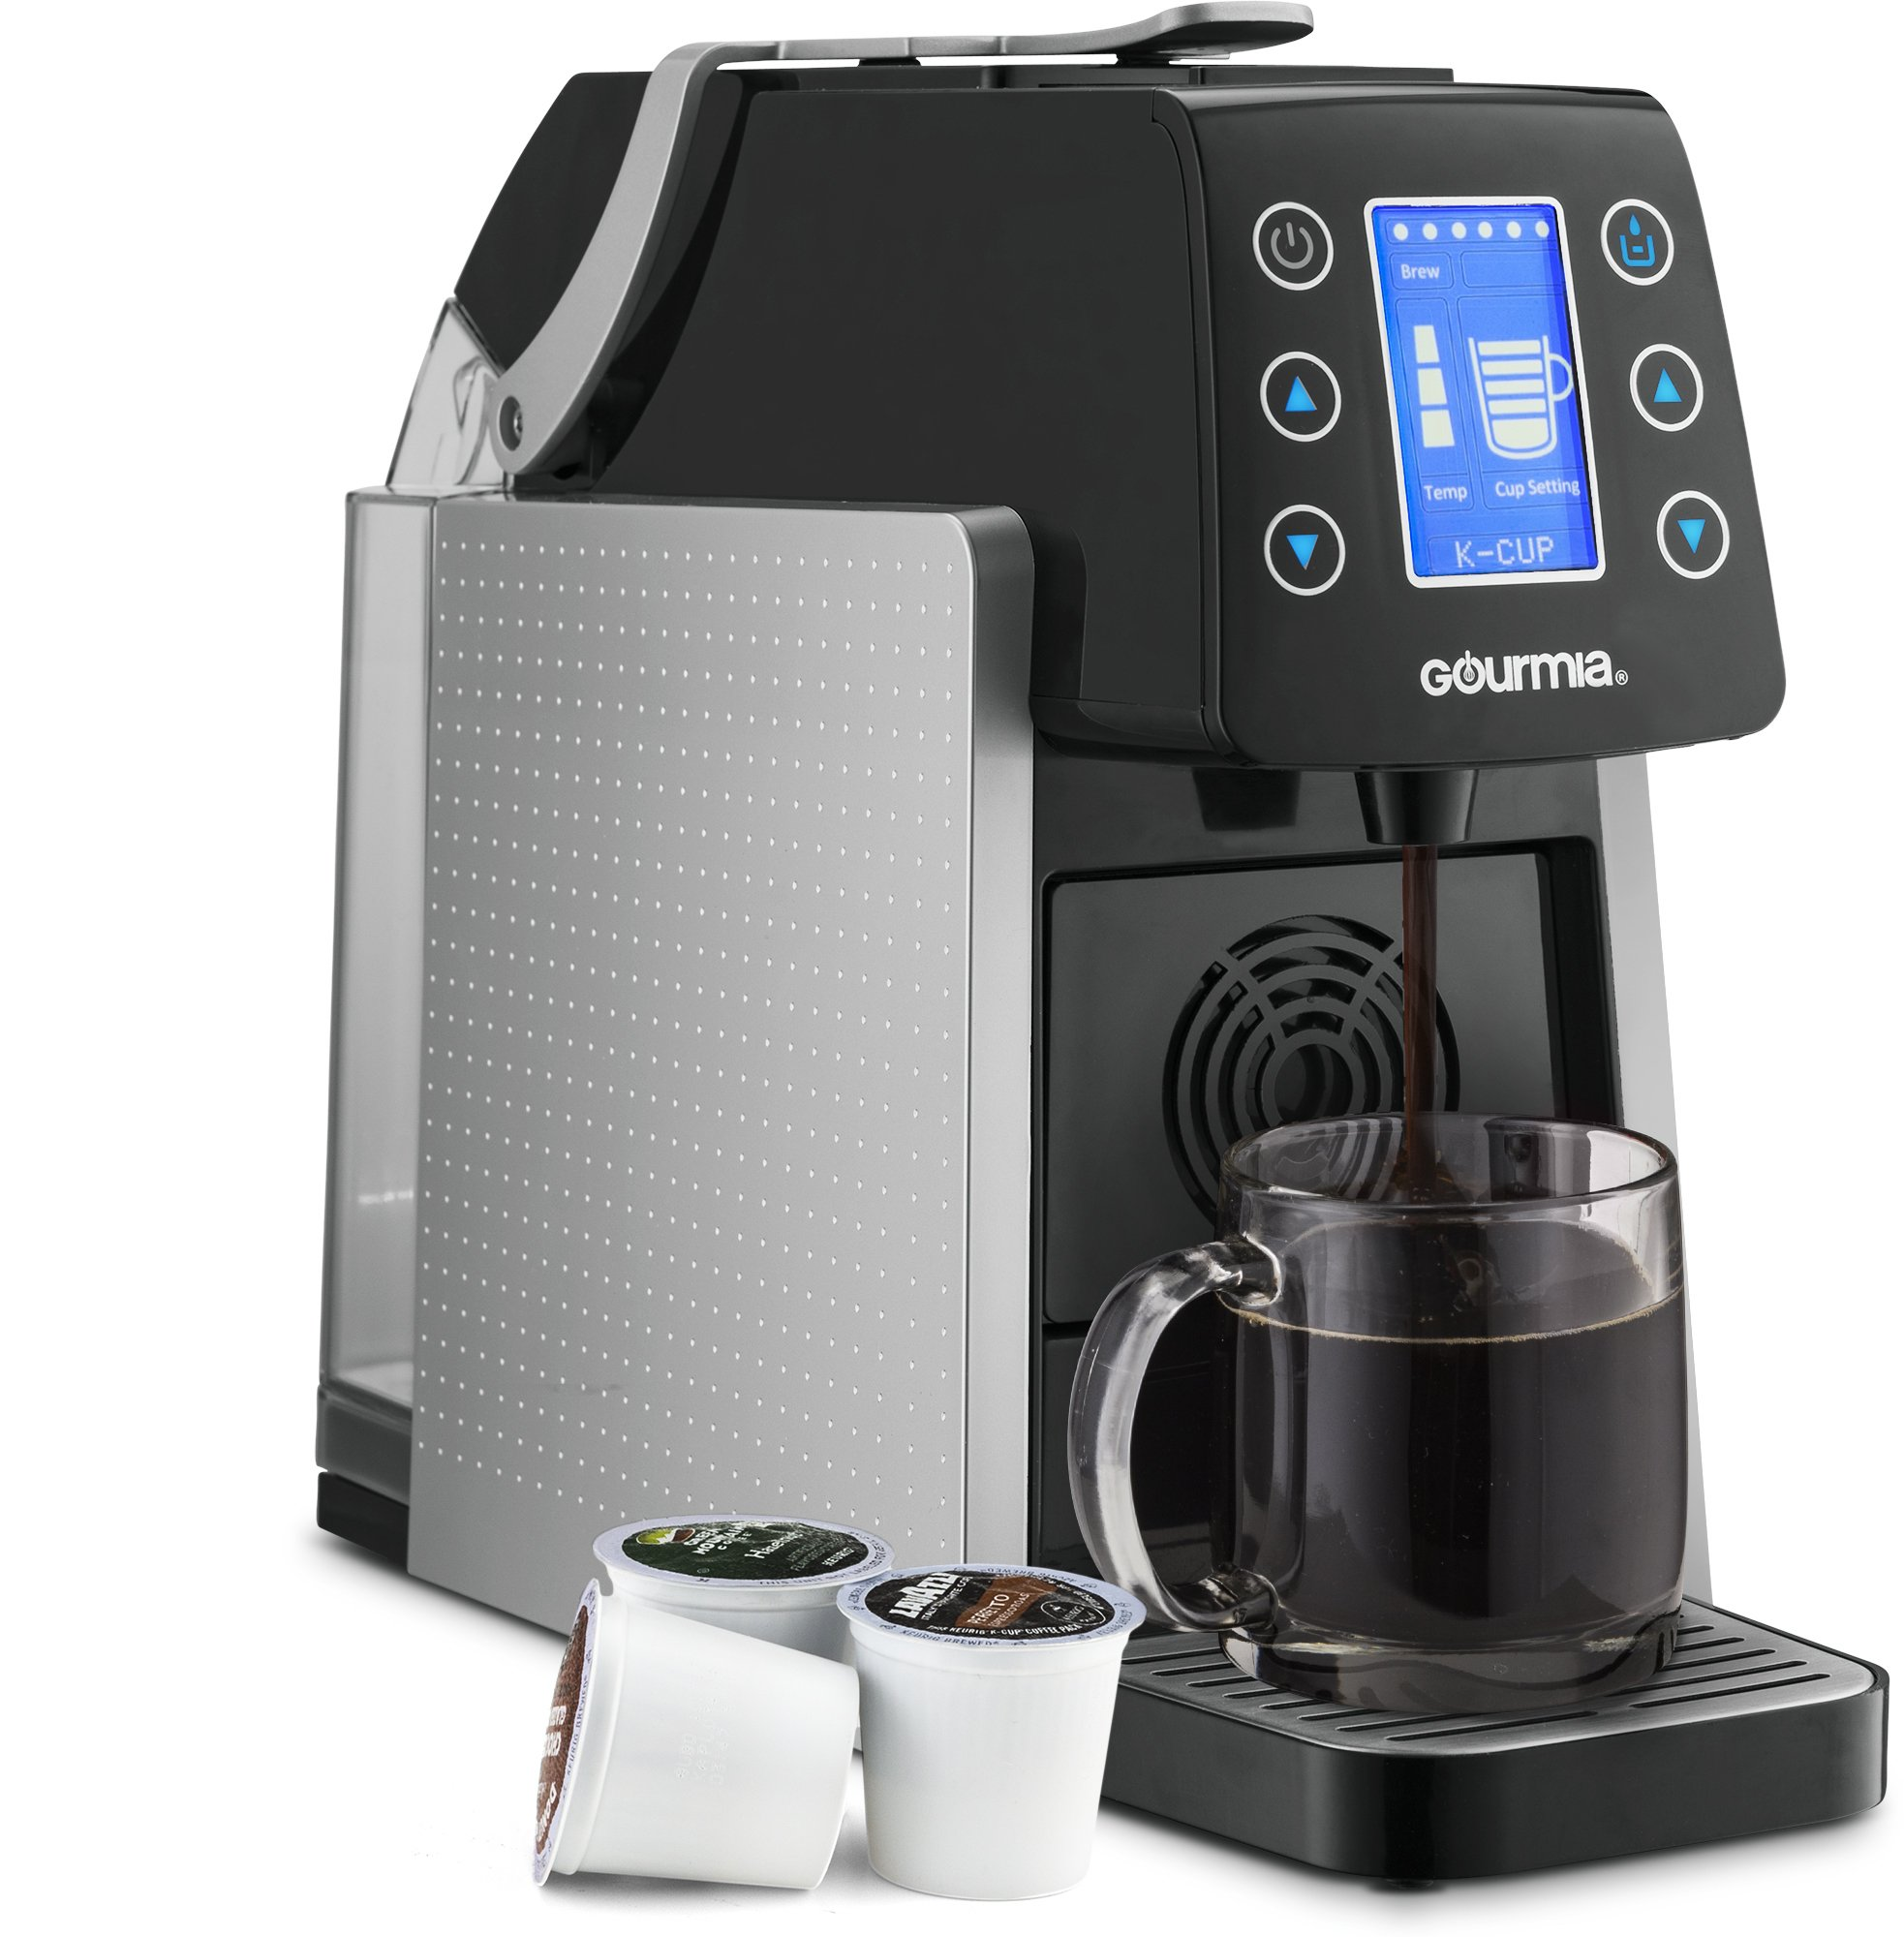 Gourmia GCM5000 One Touch Multi Capsule Coffee Machine, Compatible With Nespresso, K-Cup Pods & More, Built In Milk Frothier, Adjustable Temperature & Size, Digital Display - Silver by Gourmia (Image #3)